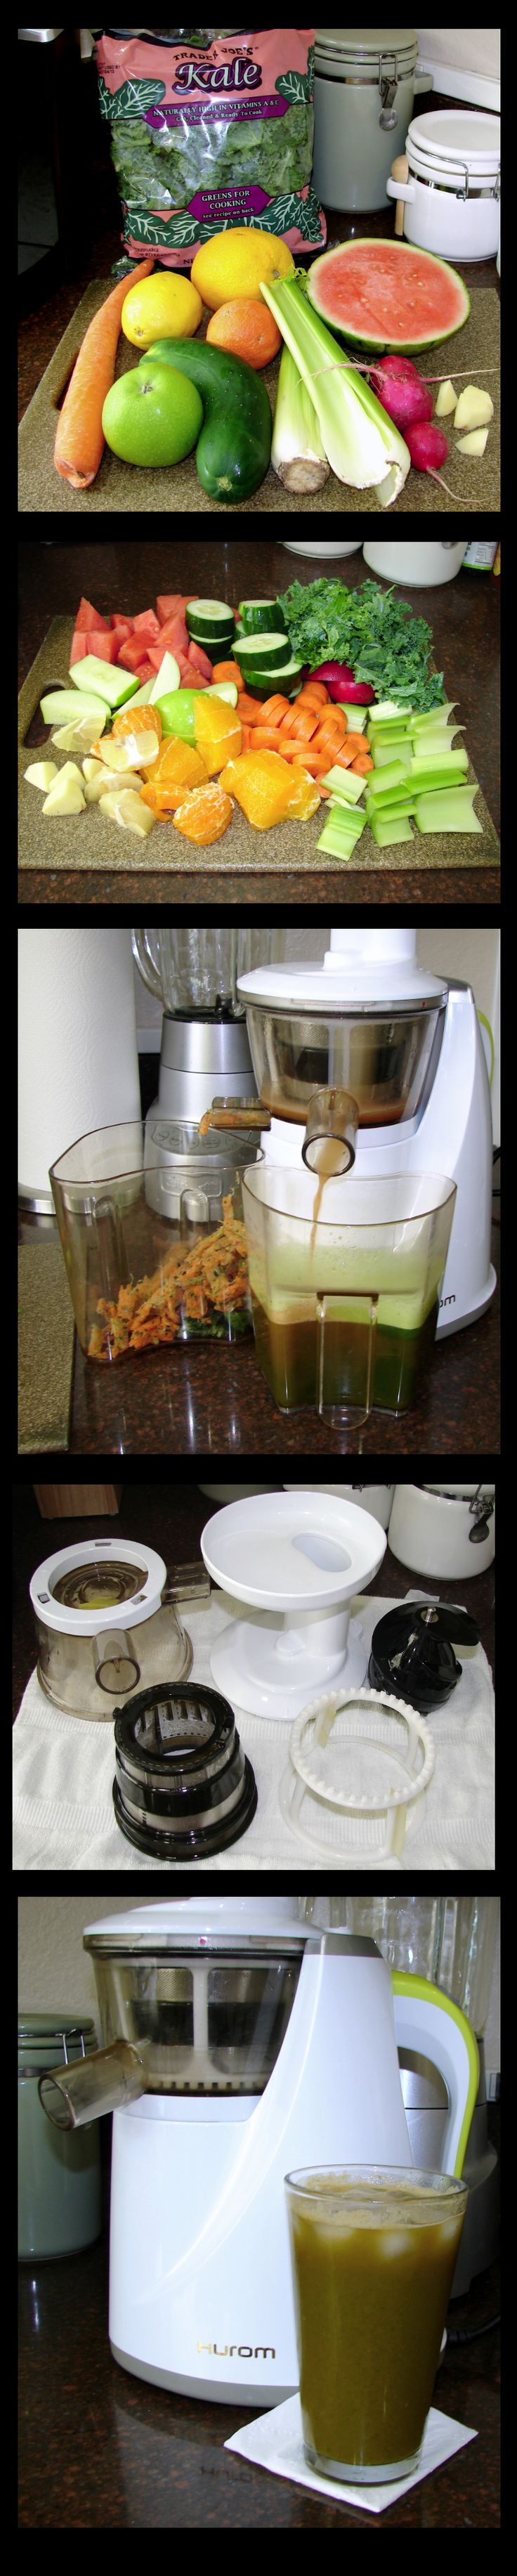 Kale Slow Juicer Recipe : 1000+ images about Best Juicer for Kale on Pinterest Kale, Apples and Best juicing recipes